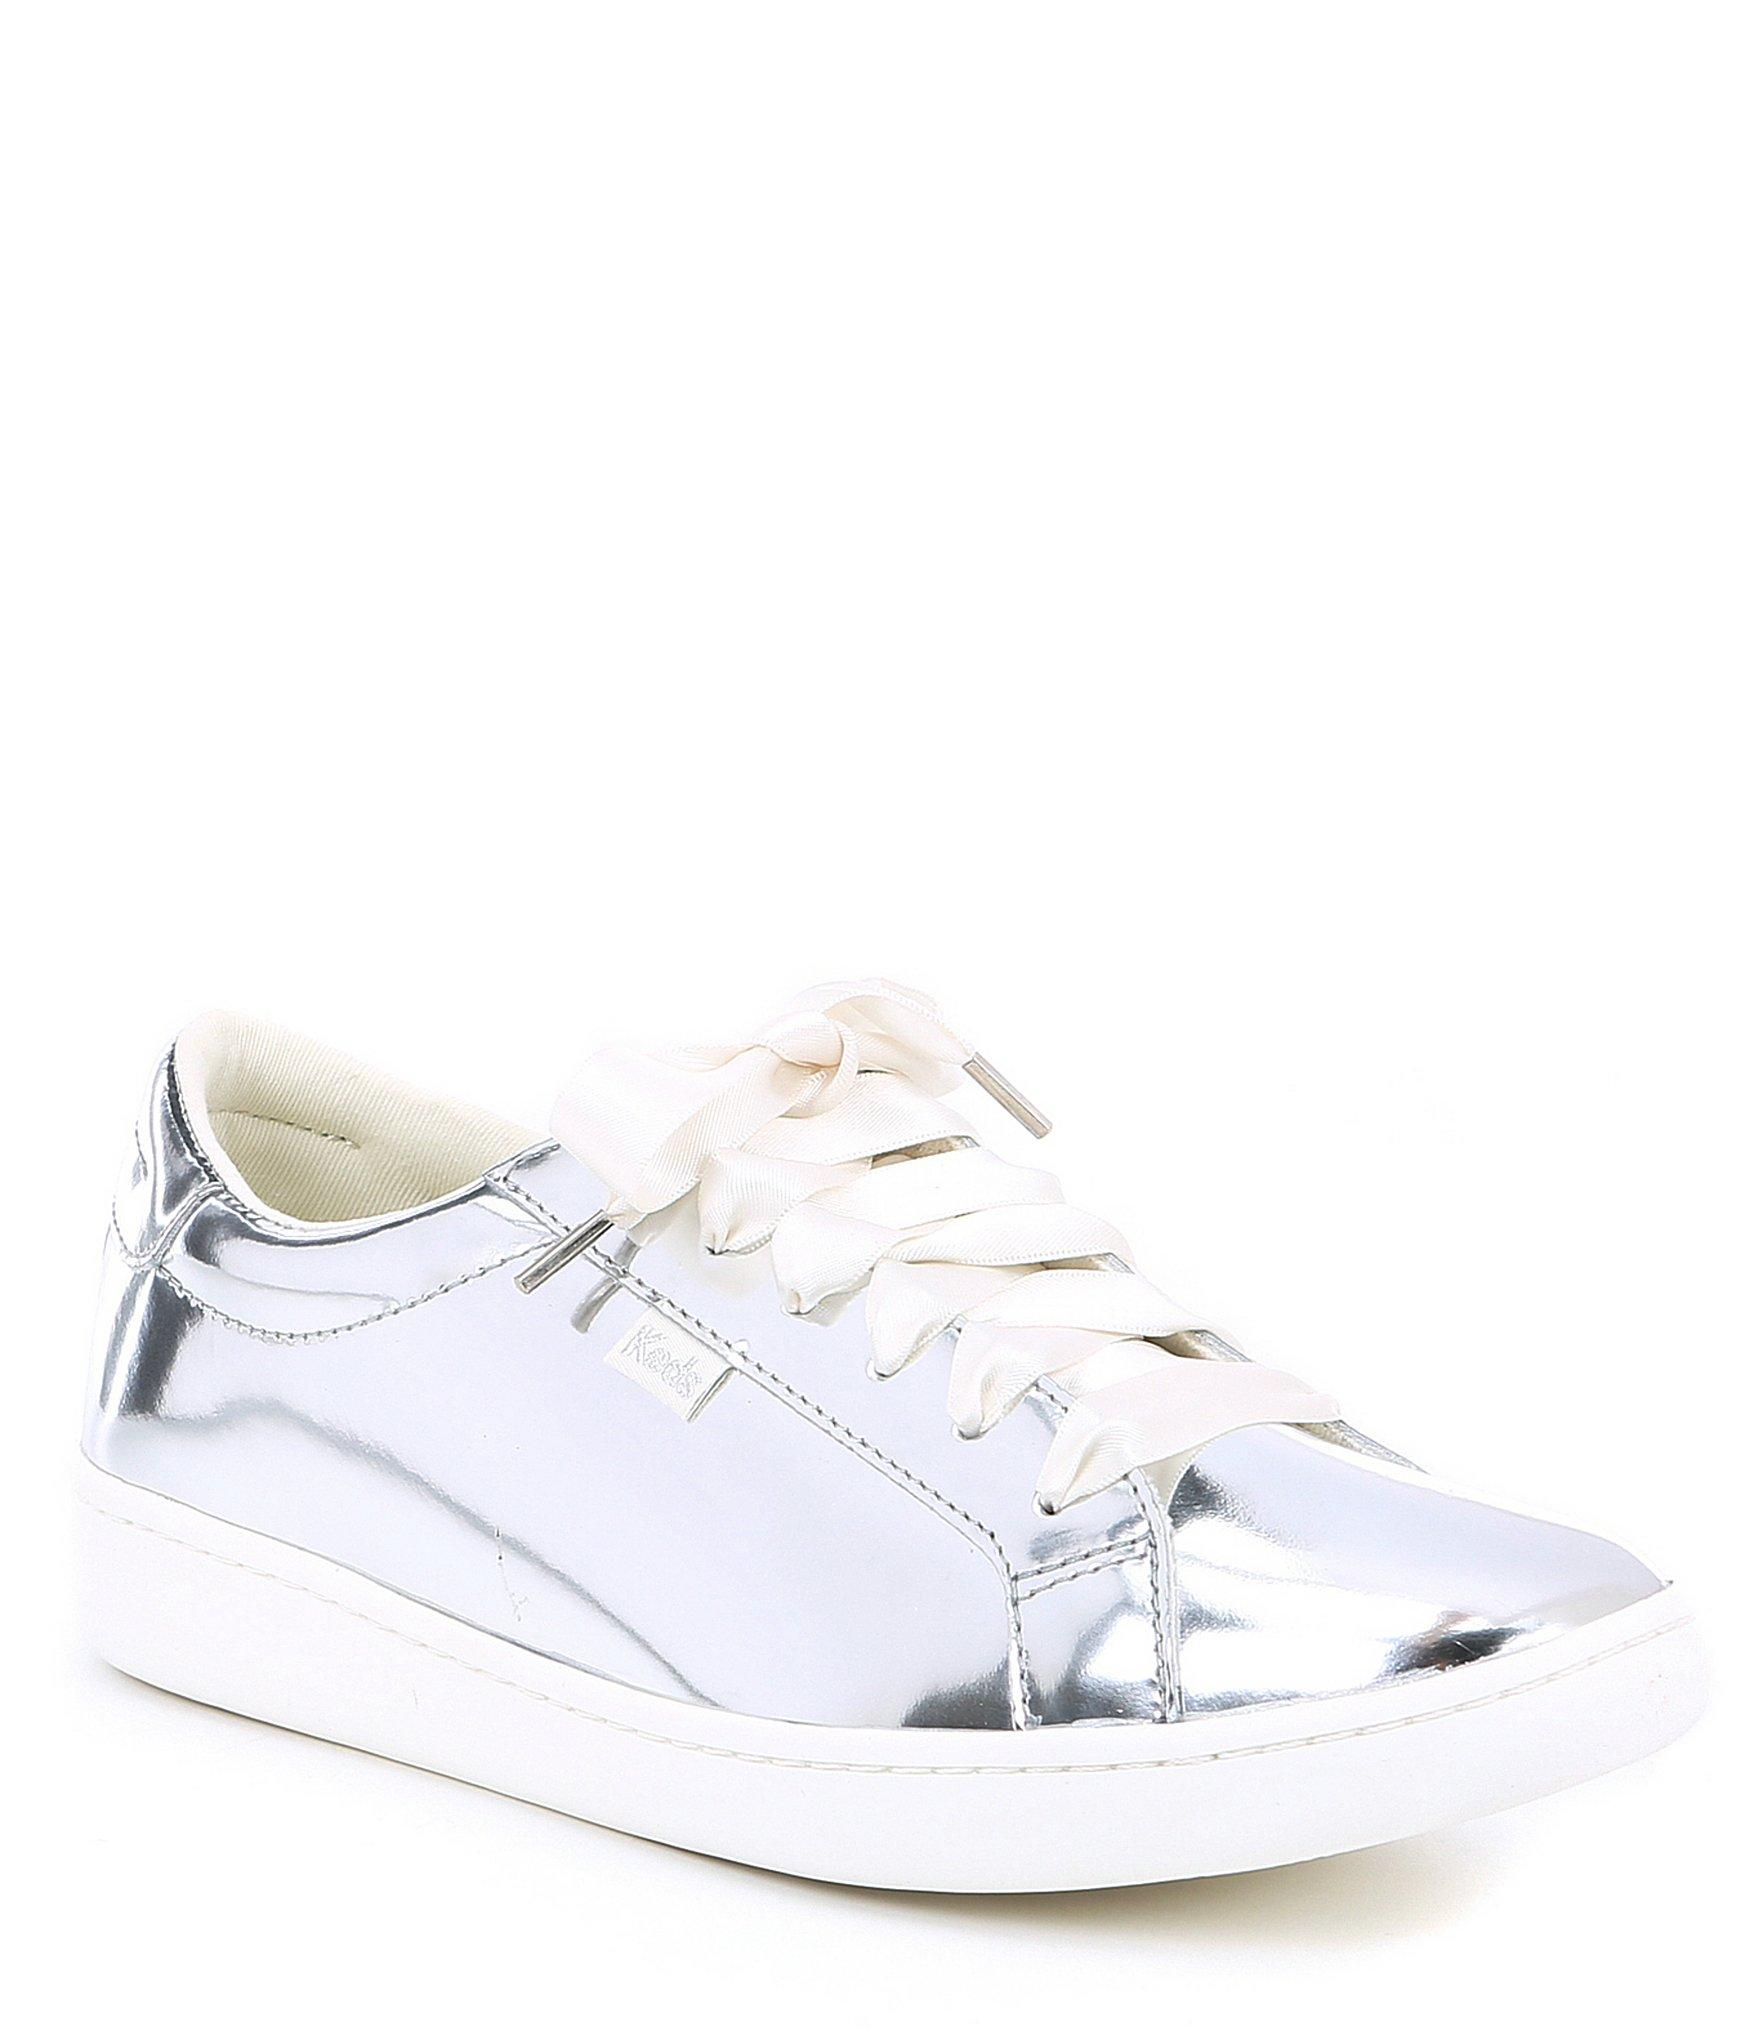 2d483429b0c7 Lyst - Kate Spade Keds X Ace Leather Specchio Sneakers in Metallic ...